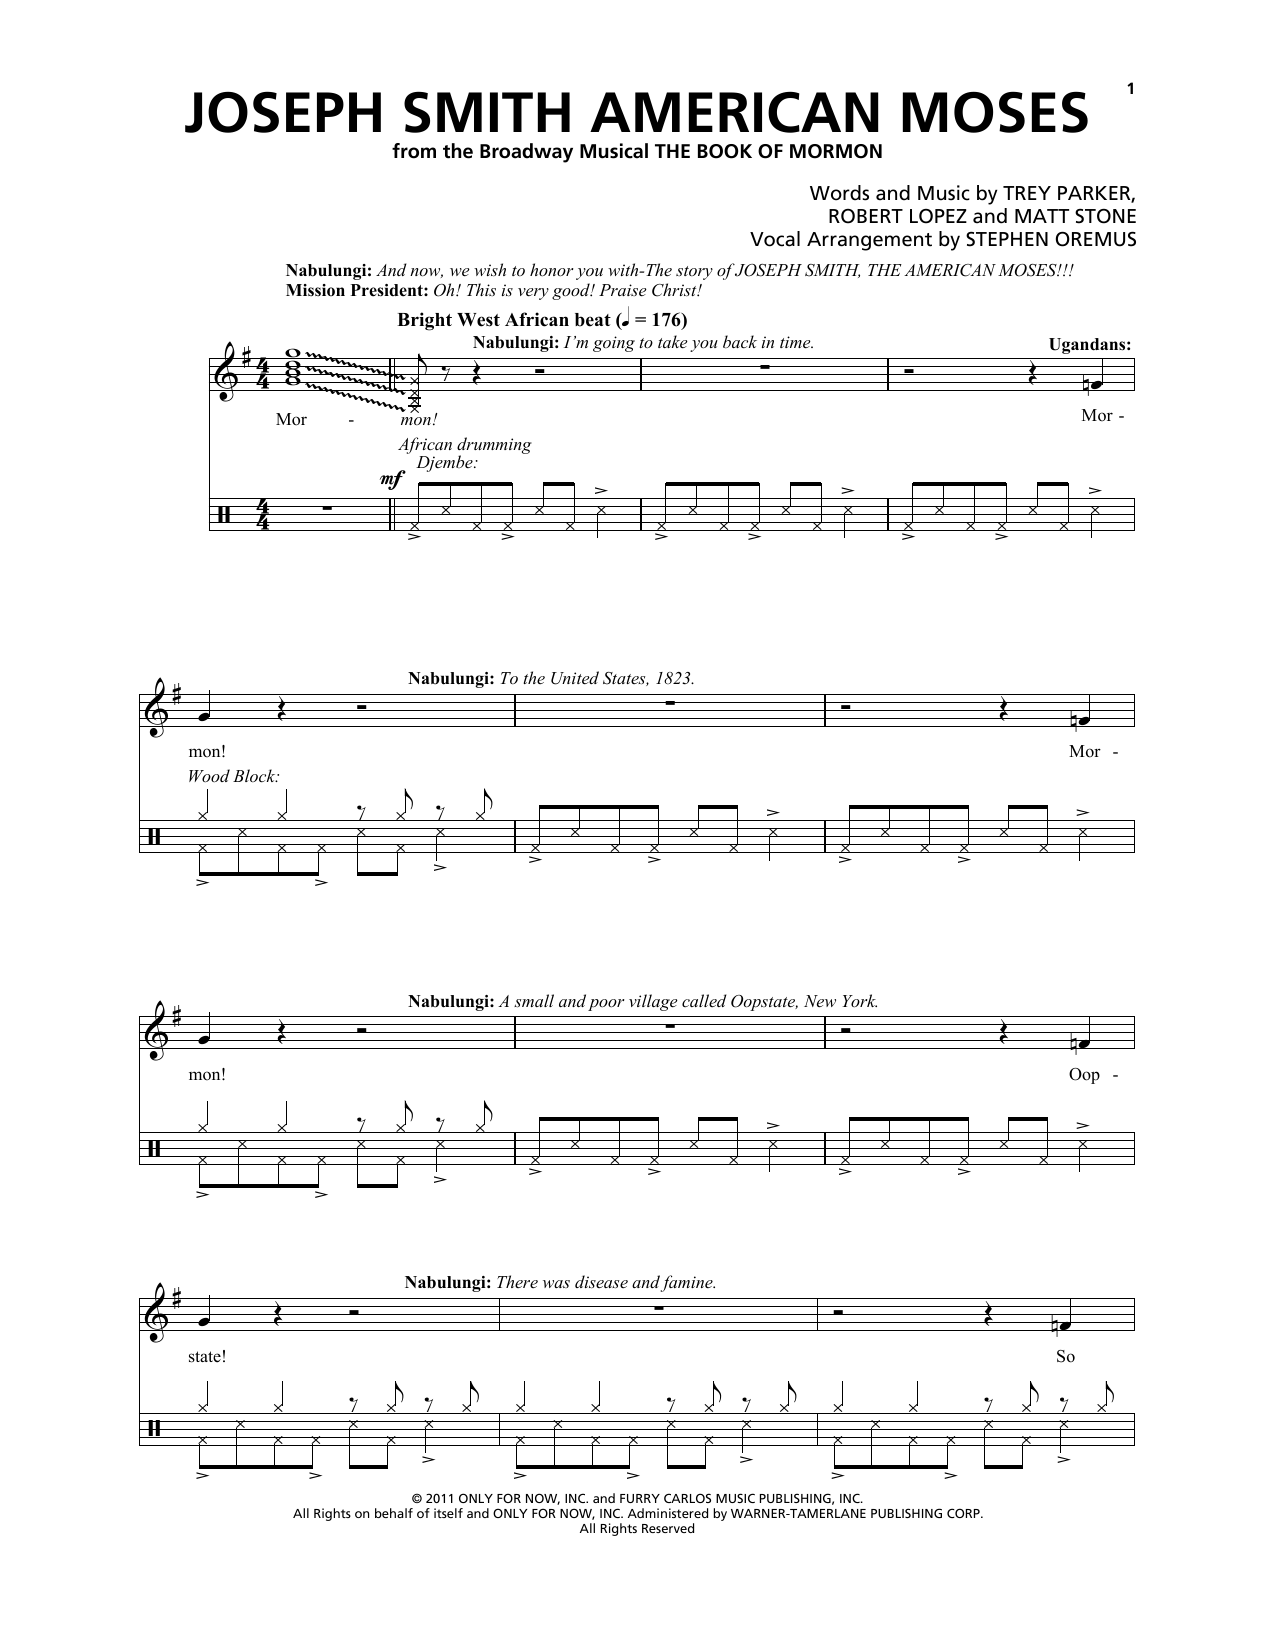 Joseph Smith American Moses (from The Book of Mormon) Sheet Music